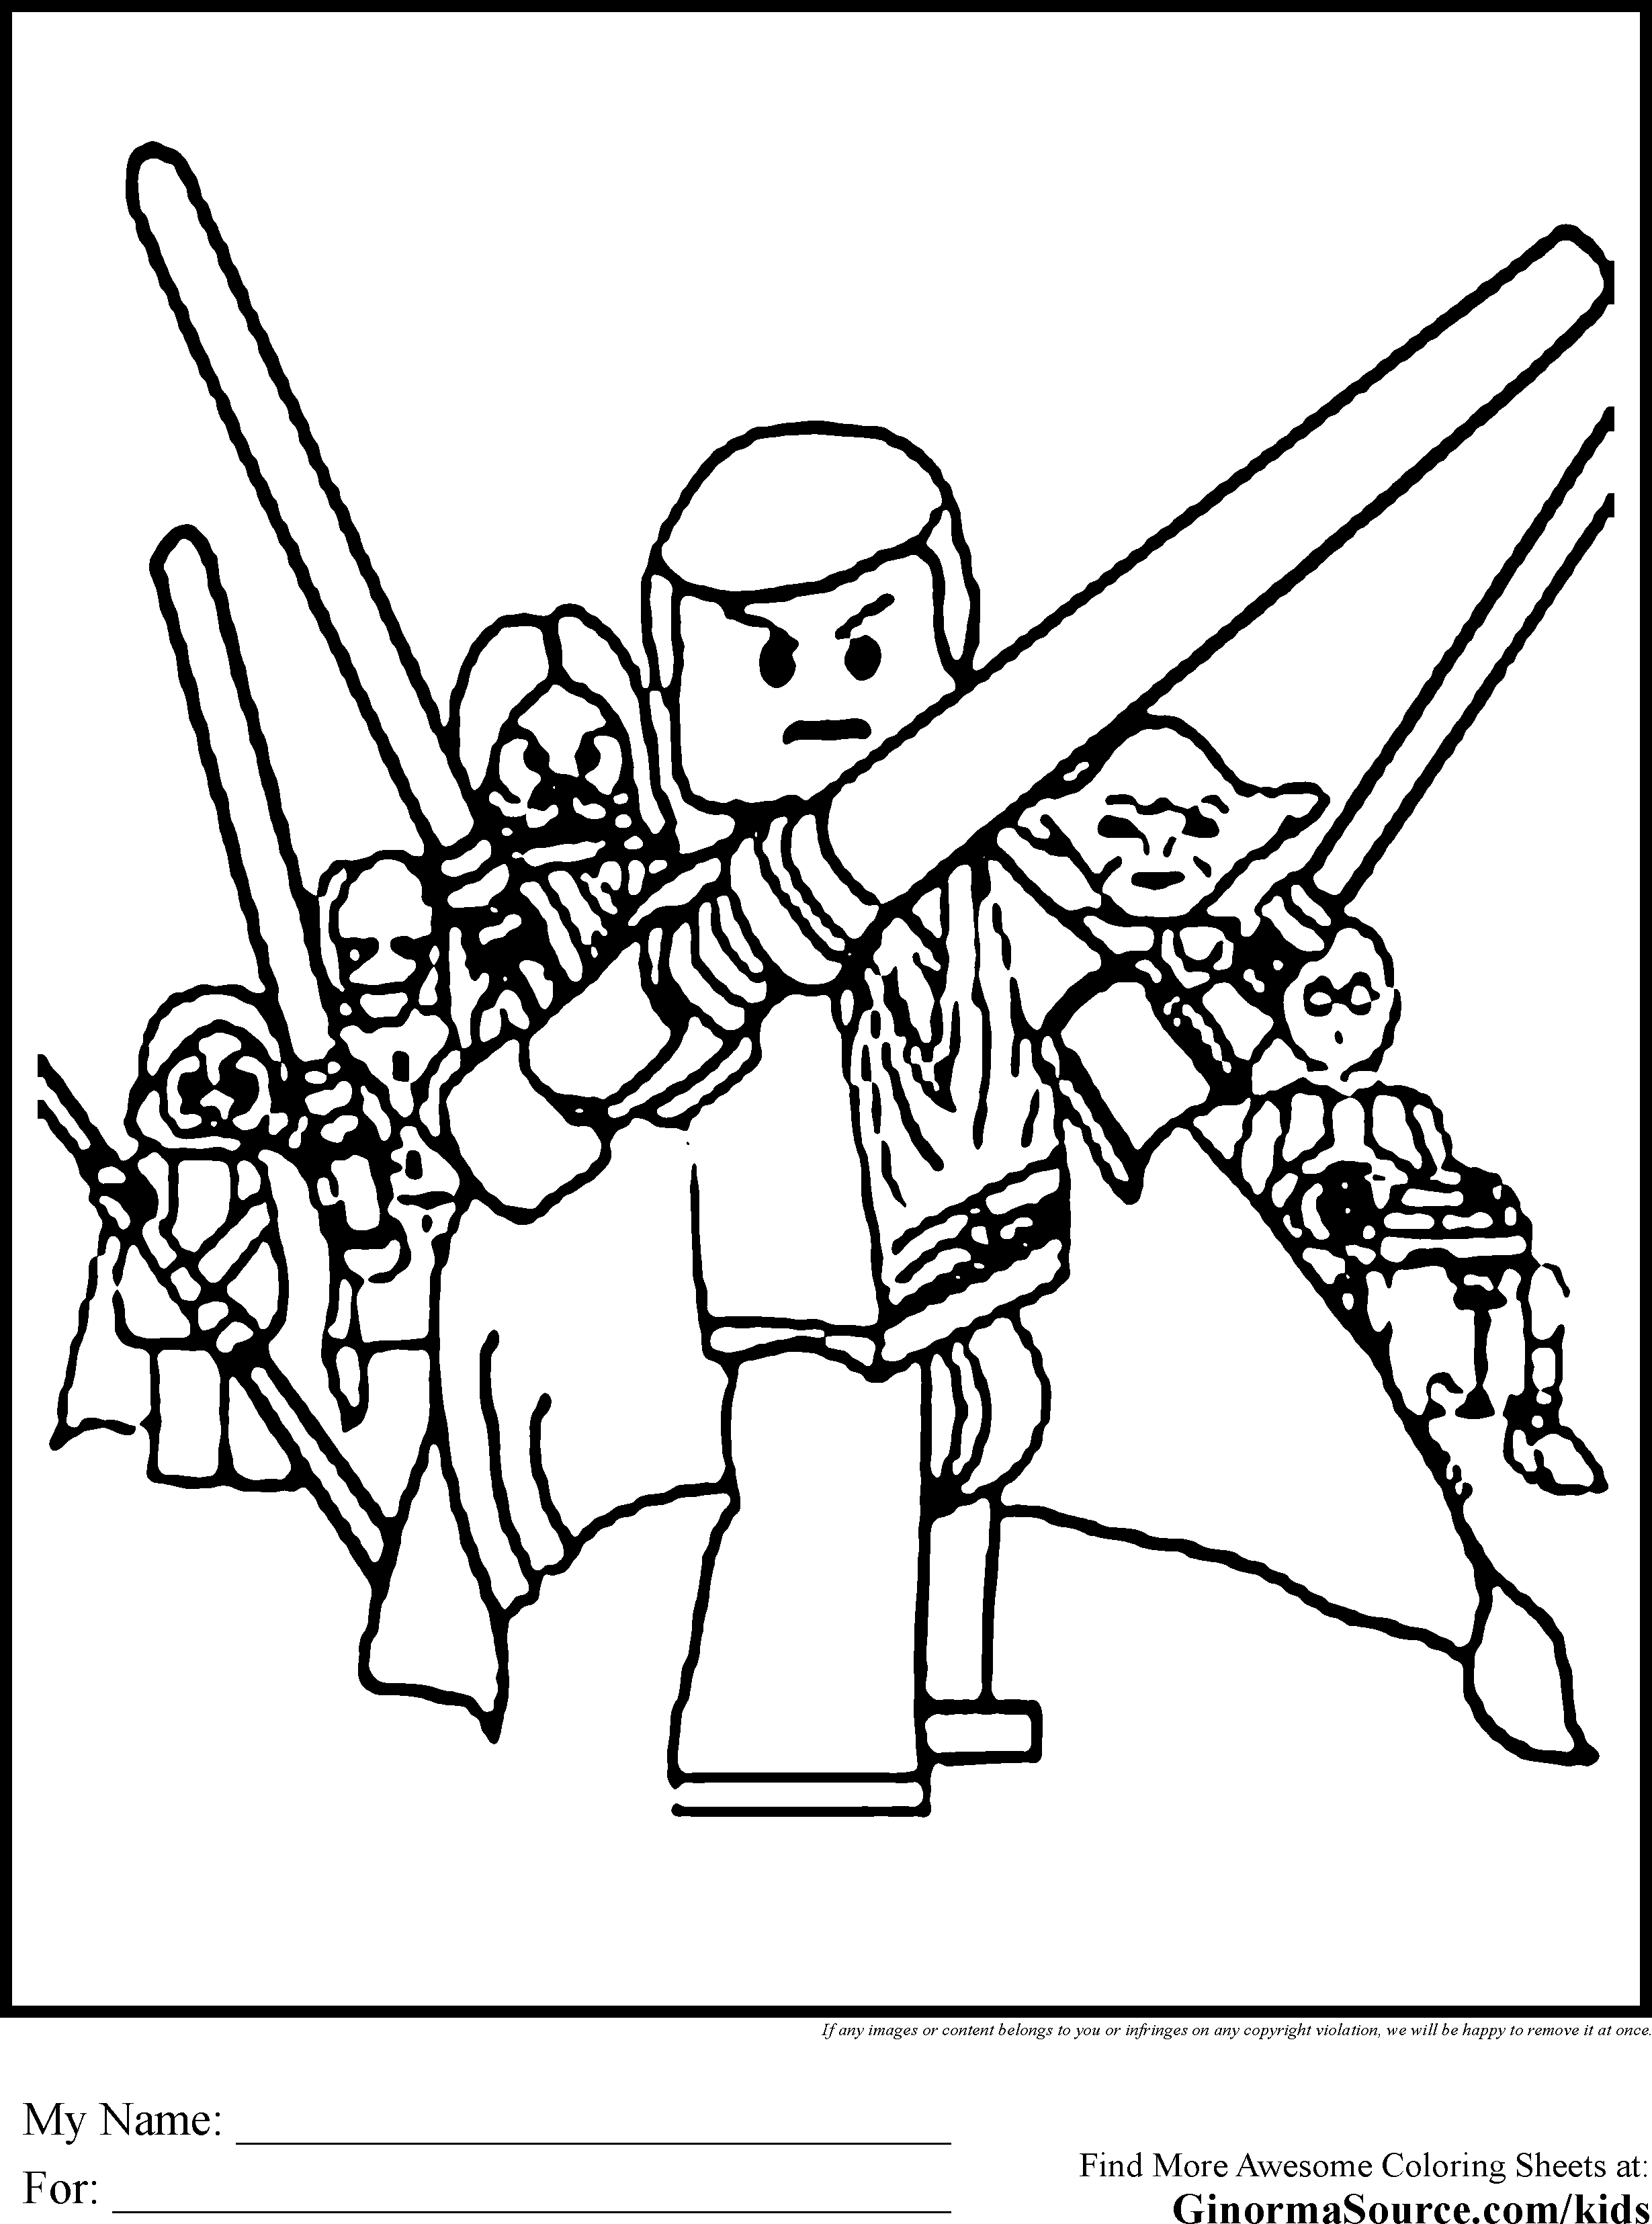 Online kid coloring games - Star Wars Coloring Pages That You Can Color Online Printerkids Printable Coloring Pages For Kids Star